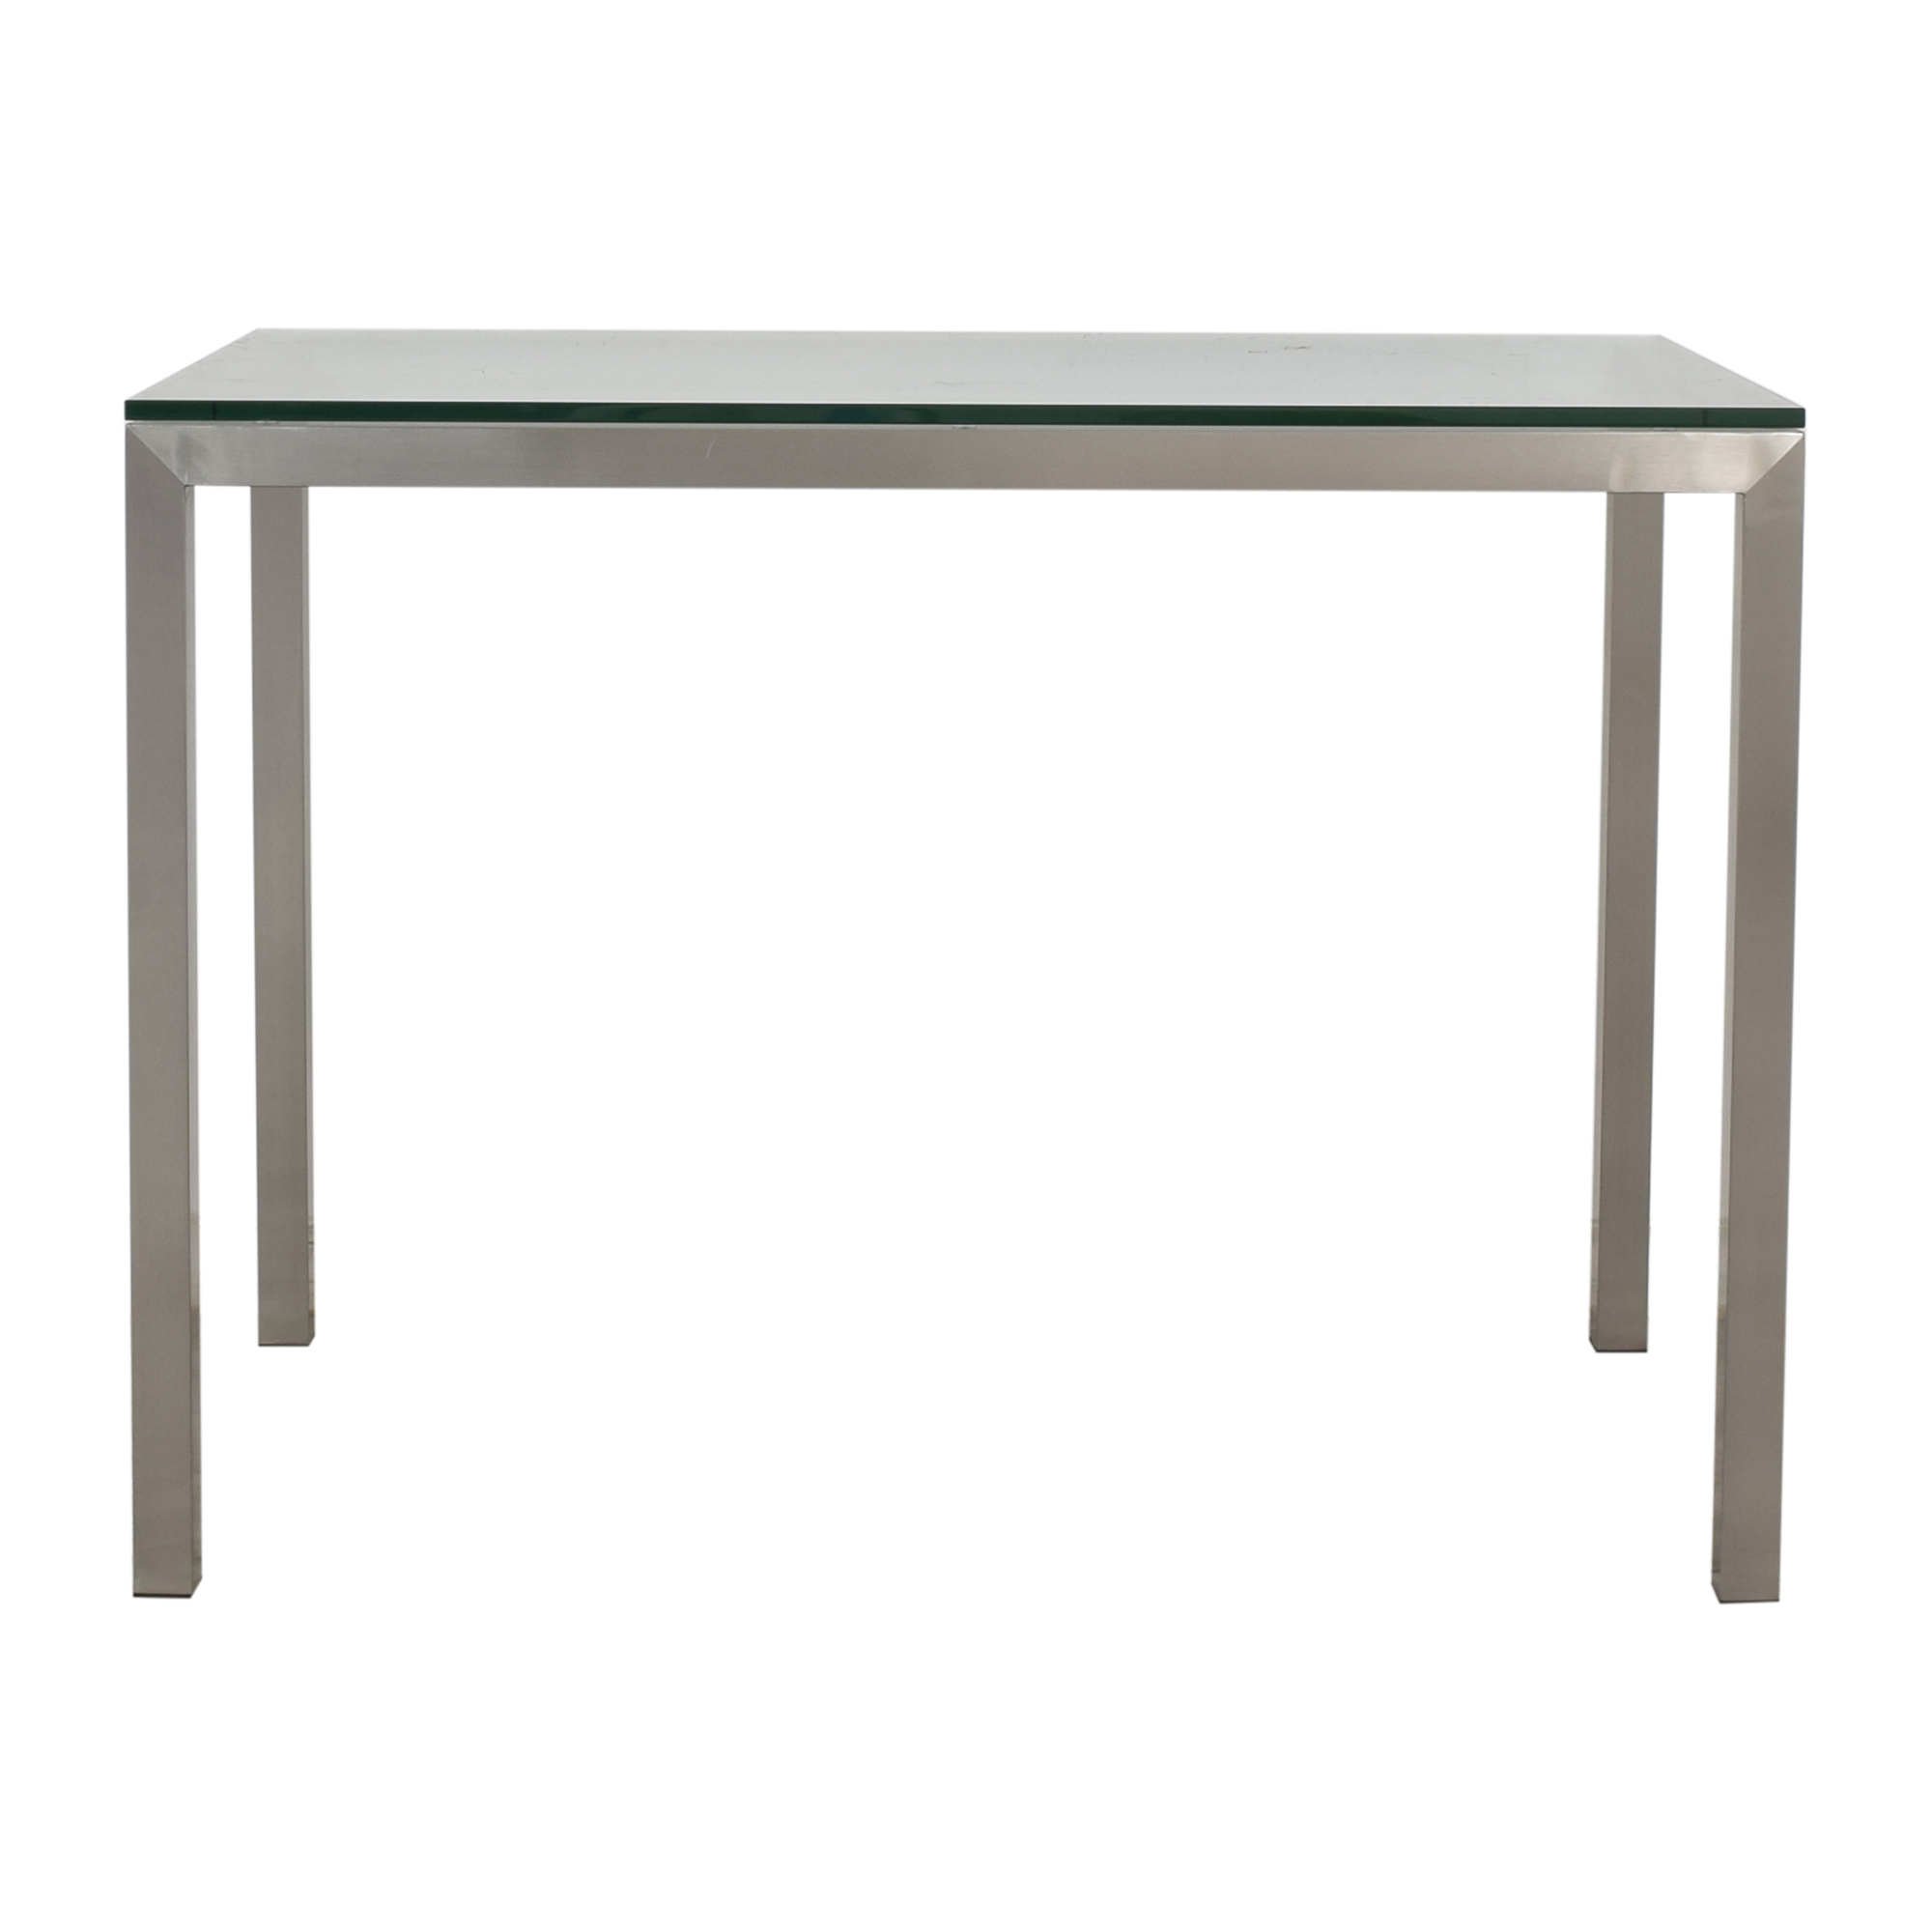 Crate & Barrel Crate & Barrel Parsons High Dining Table Tables